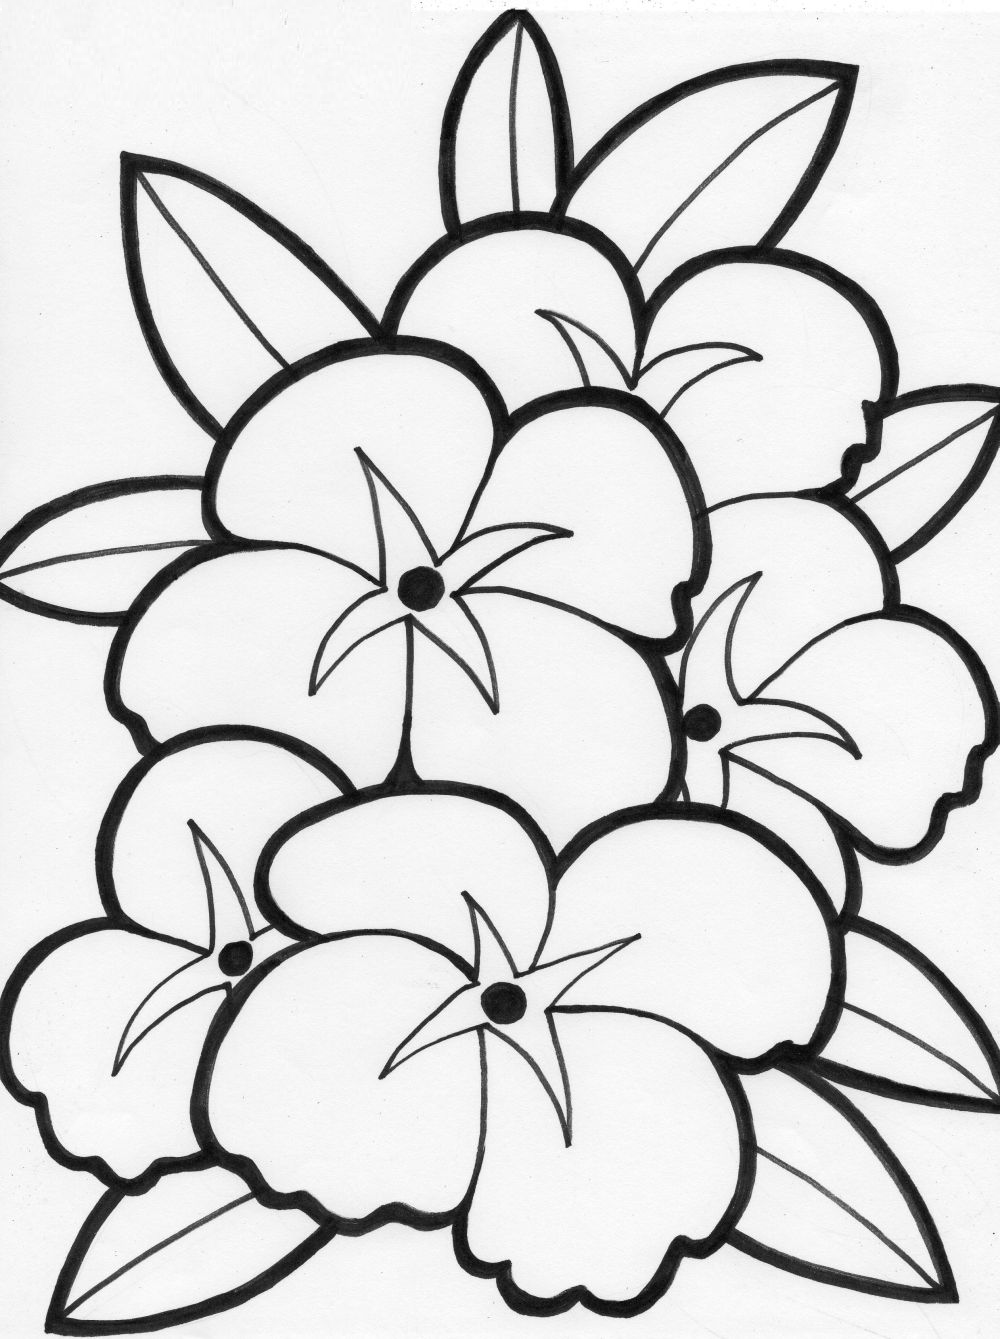 free printable flowers to color free printable flower coloring pages for kids best to free printable flowers color